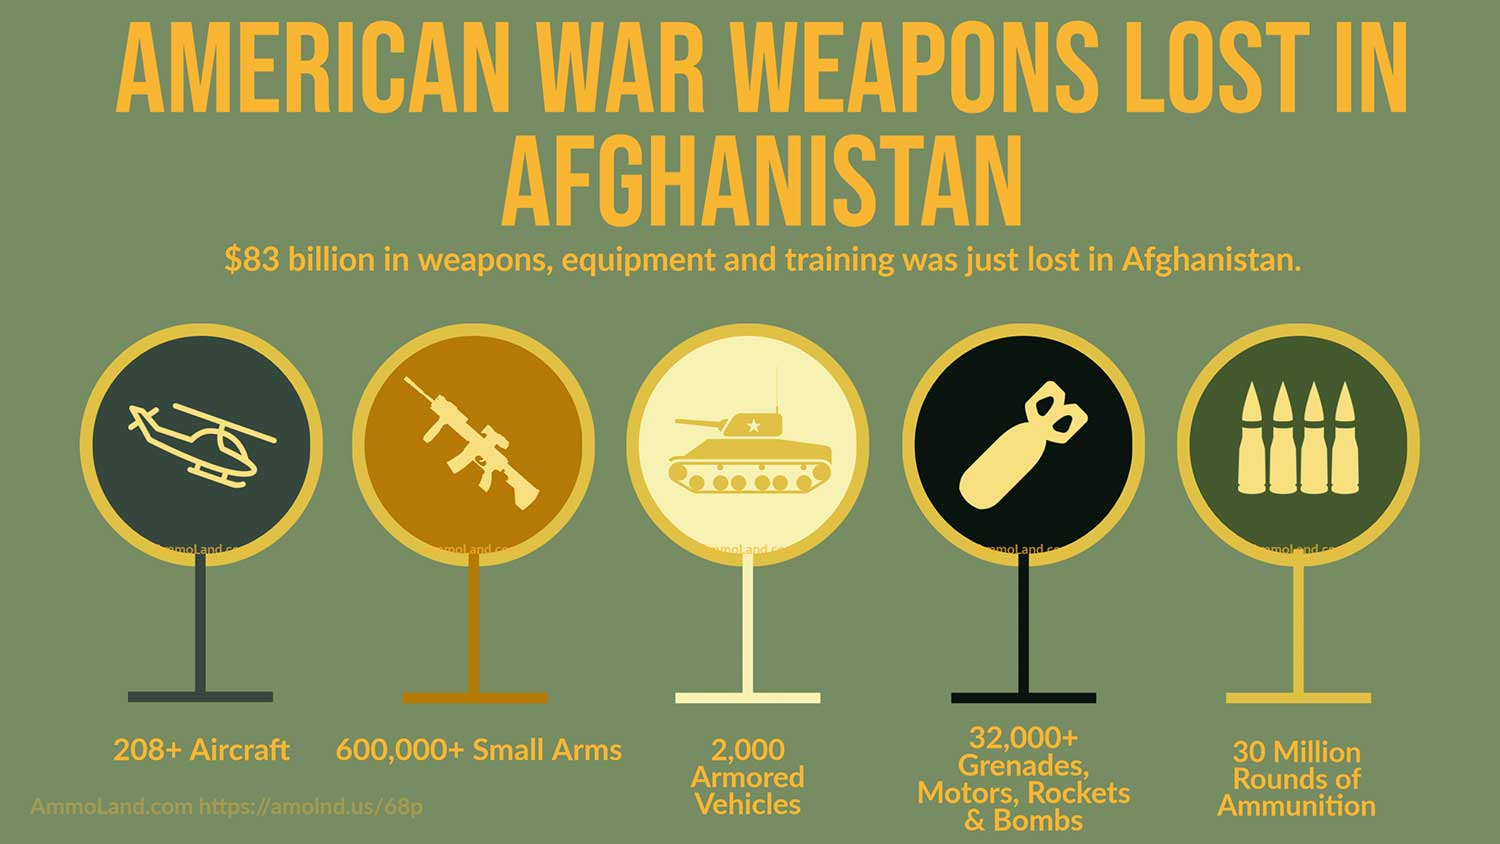 all US weapons, ammo, vehicles and equipment lost to Taliban